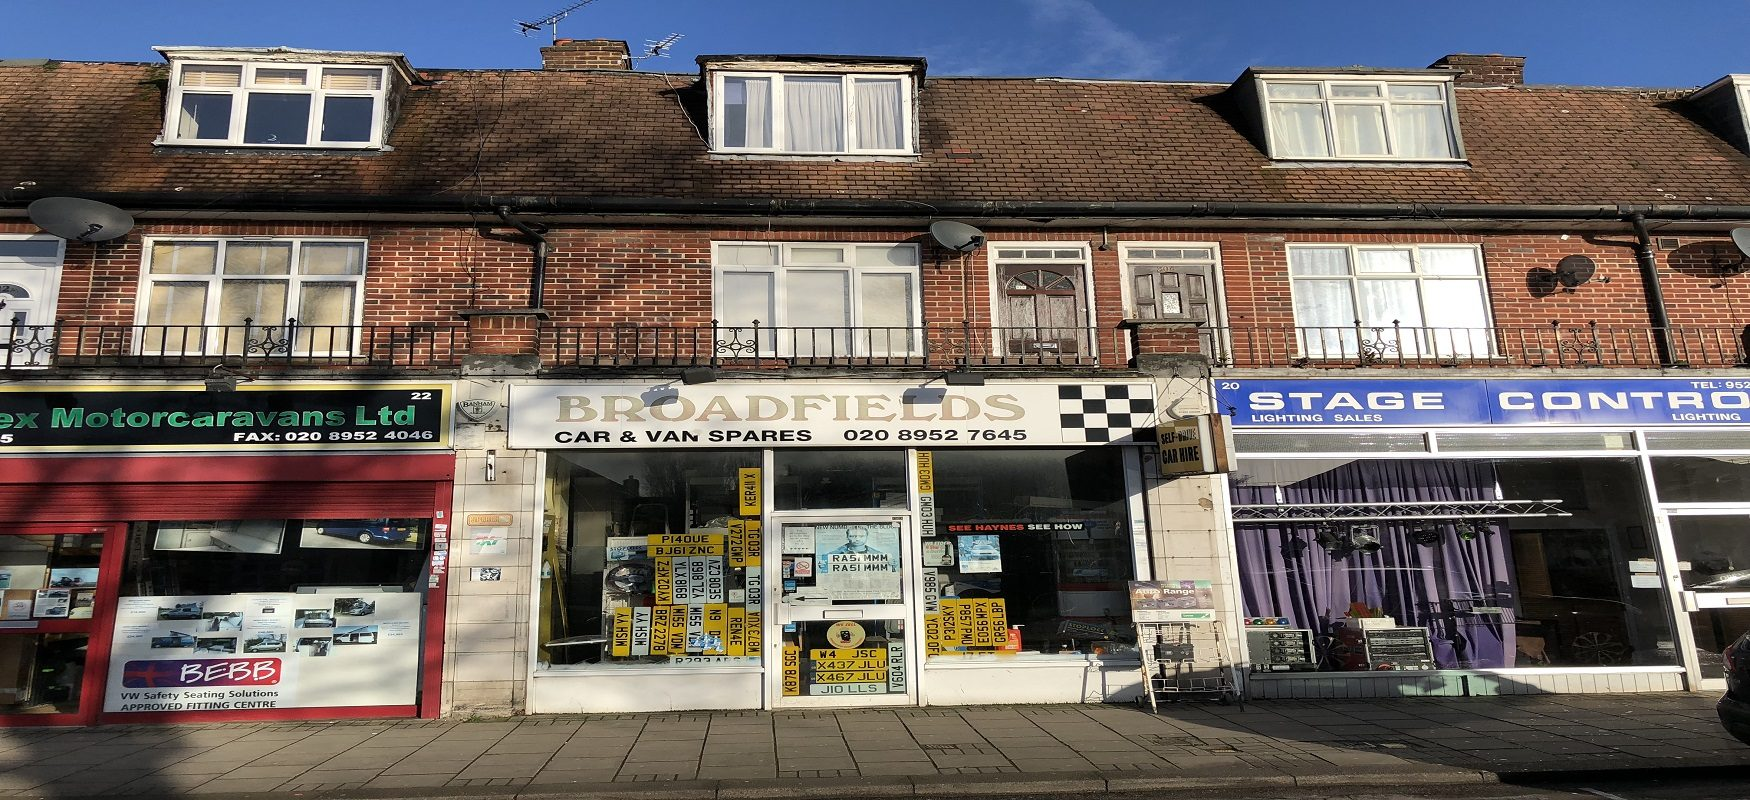 A1 RETAIL PREMISES WITH PARKING / POTENTIAL A3/A5 (Subject to Planning) TO LET